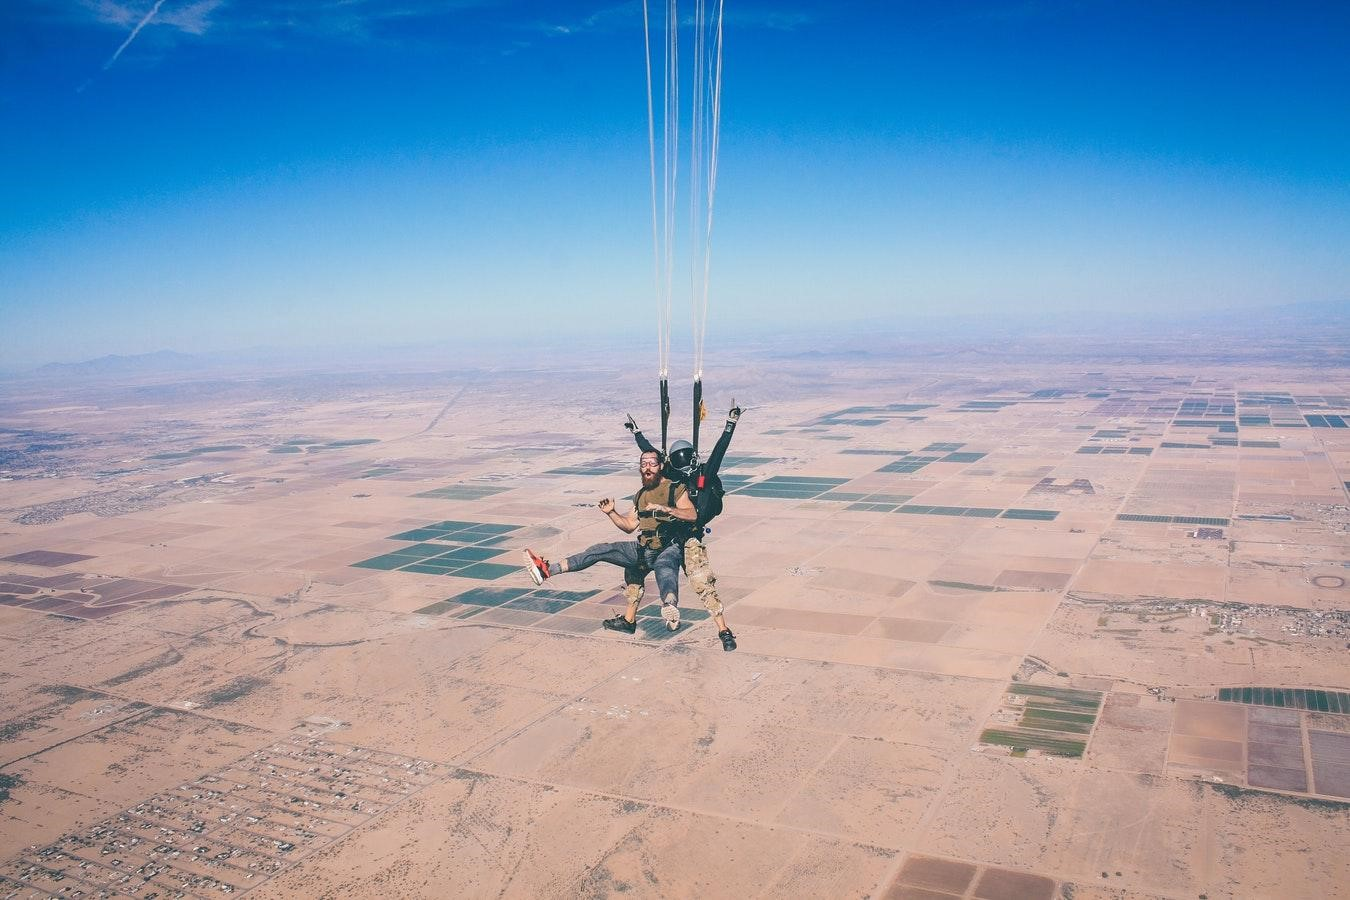 Adrenaline-packed Extreme Sports You'll Want to Check Out